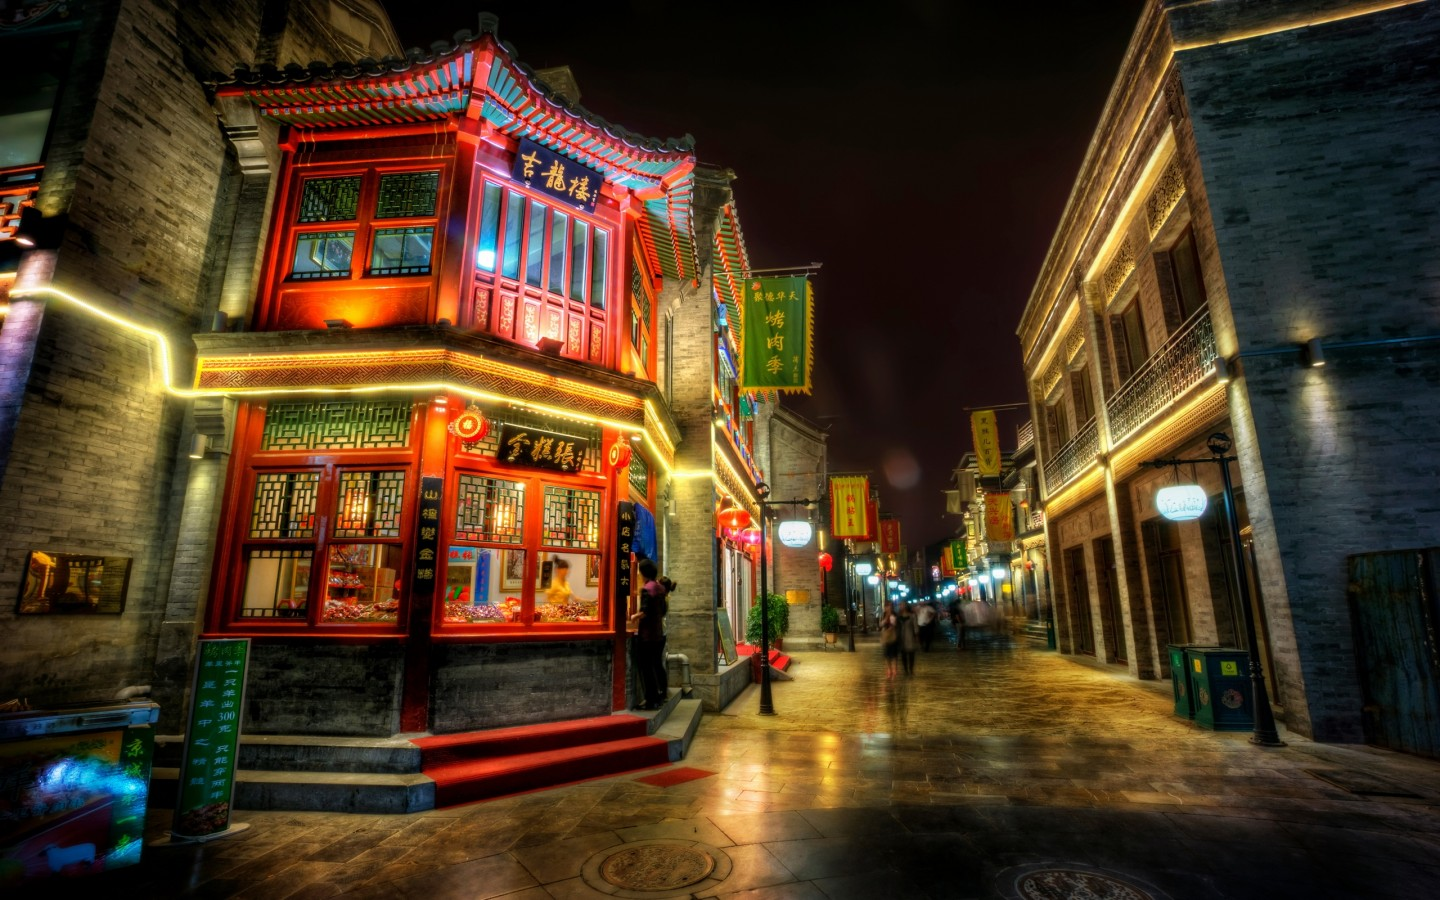 China_Houses_Beijing_Night_Street_Street_lights_HDR-2560X1600-1440x900.jpg